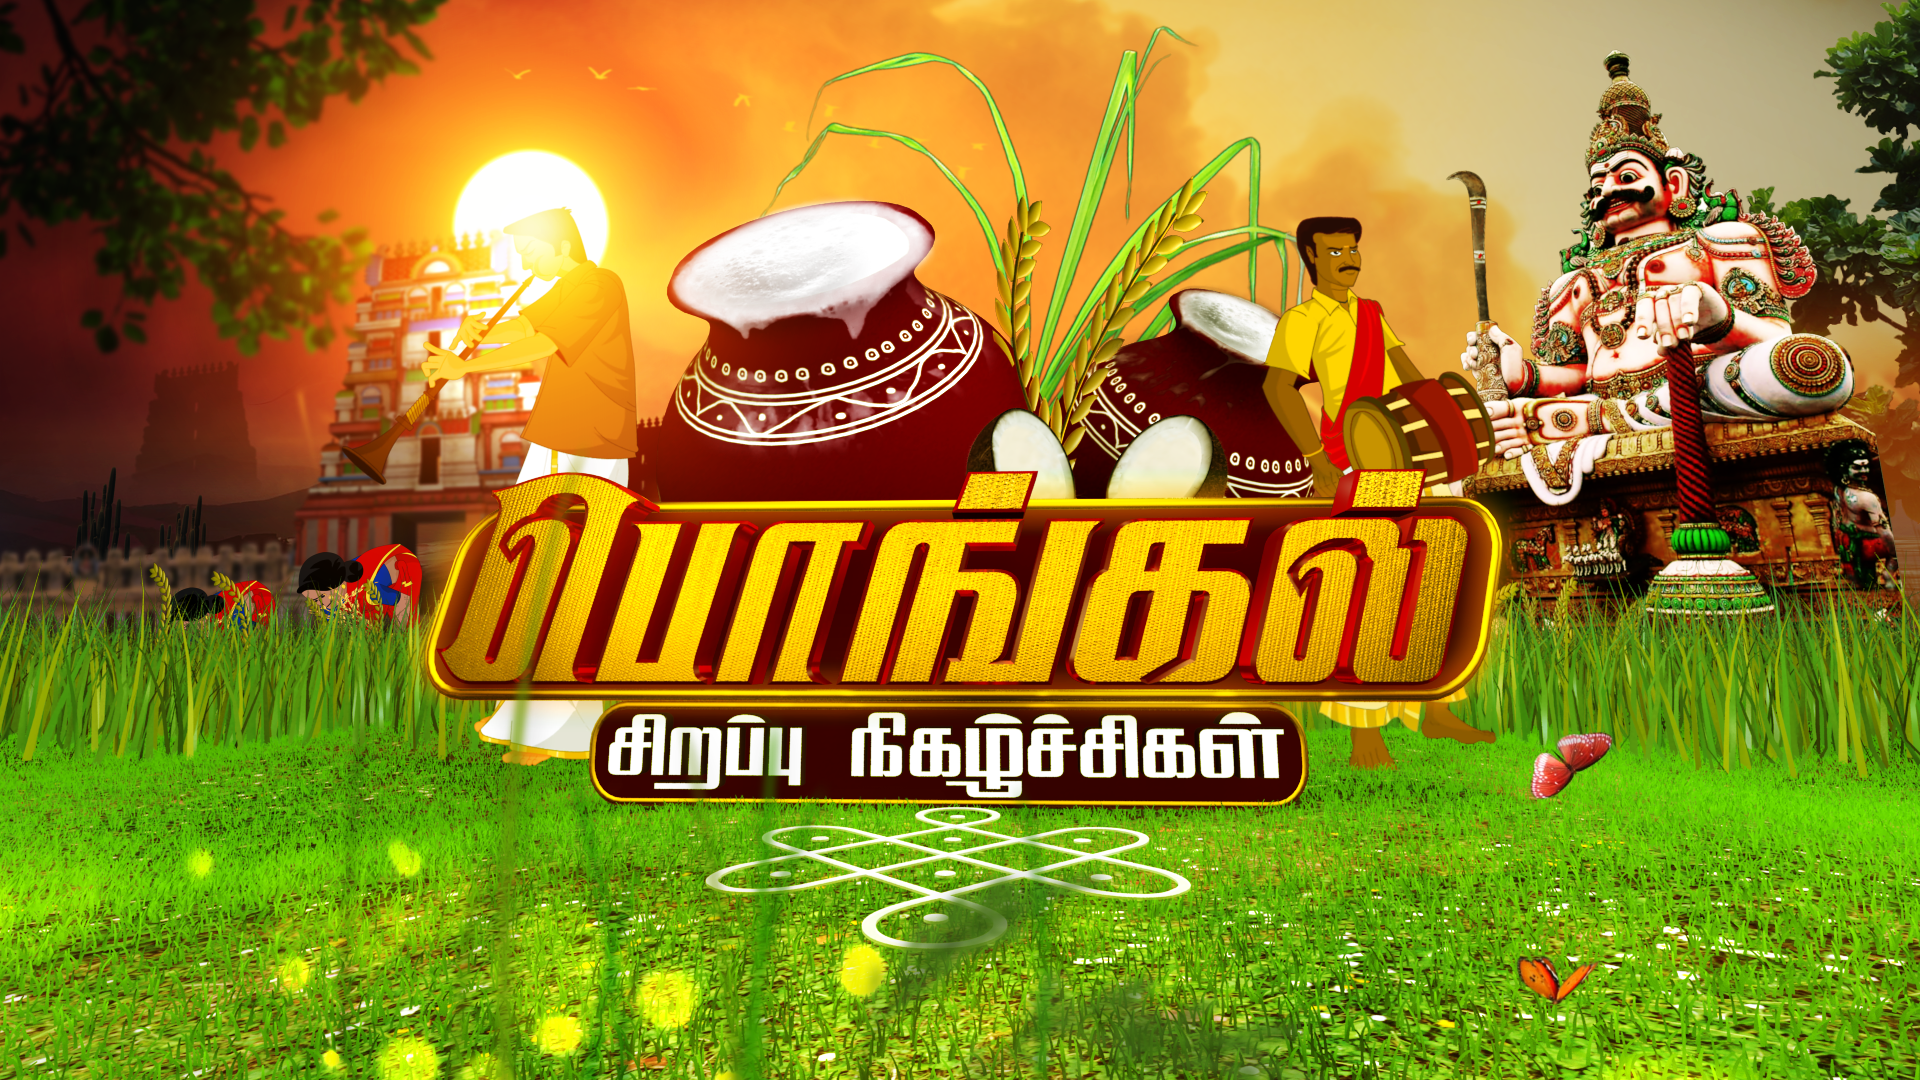 Pongal Celebration Picture Wallpapers Tamil